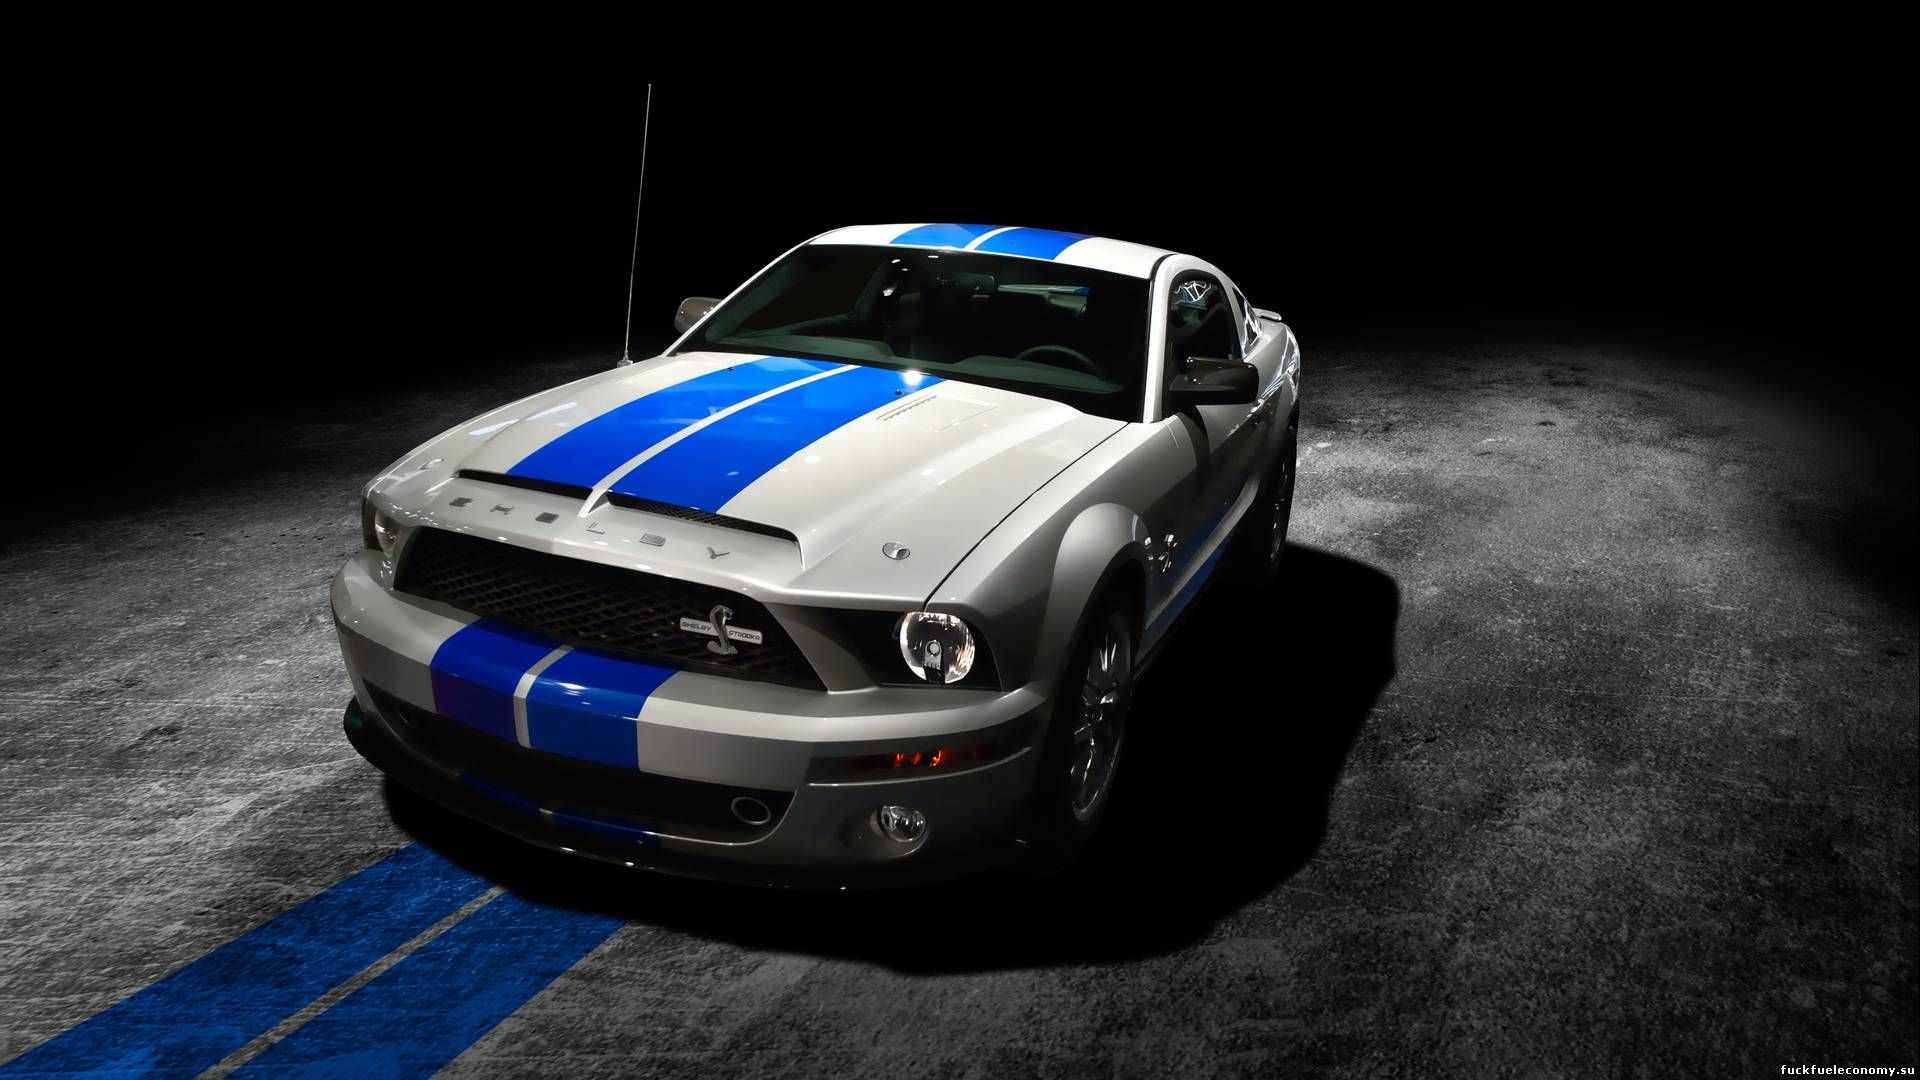 Keyword 12014 mustang shelby super snake price html keyword 2 2014 mustang shelby super snake price html keyword 3 2014 mustang shelby super snake